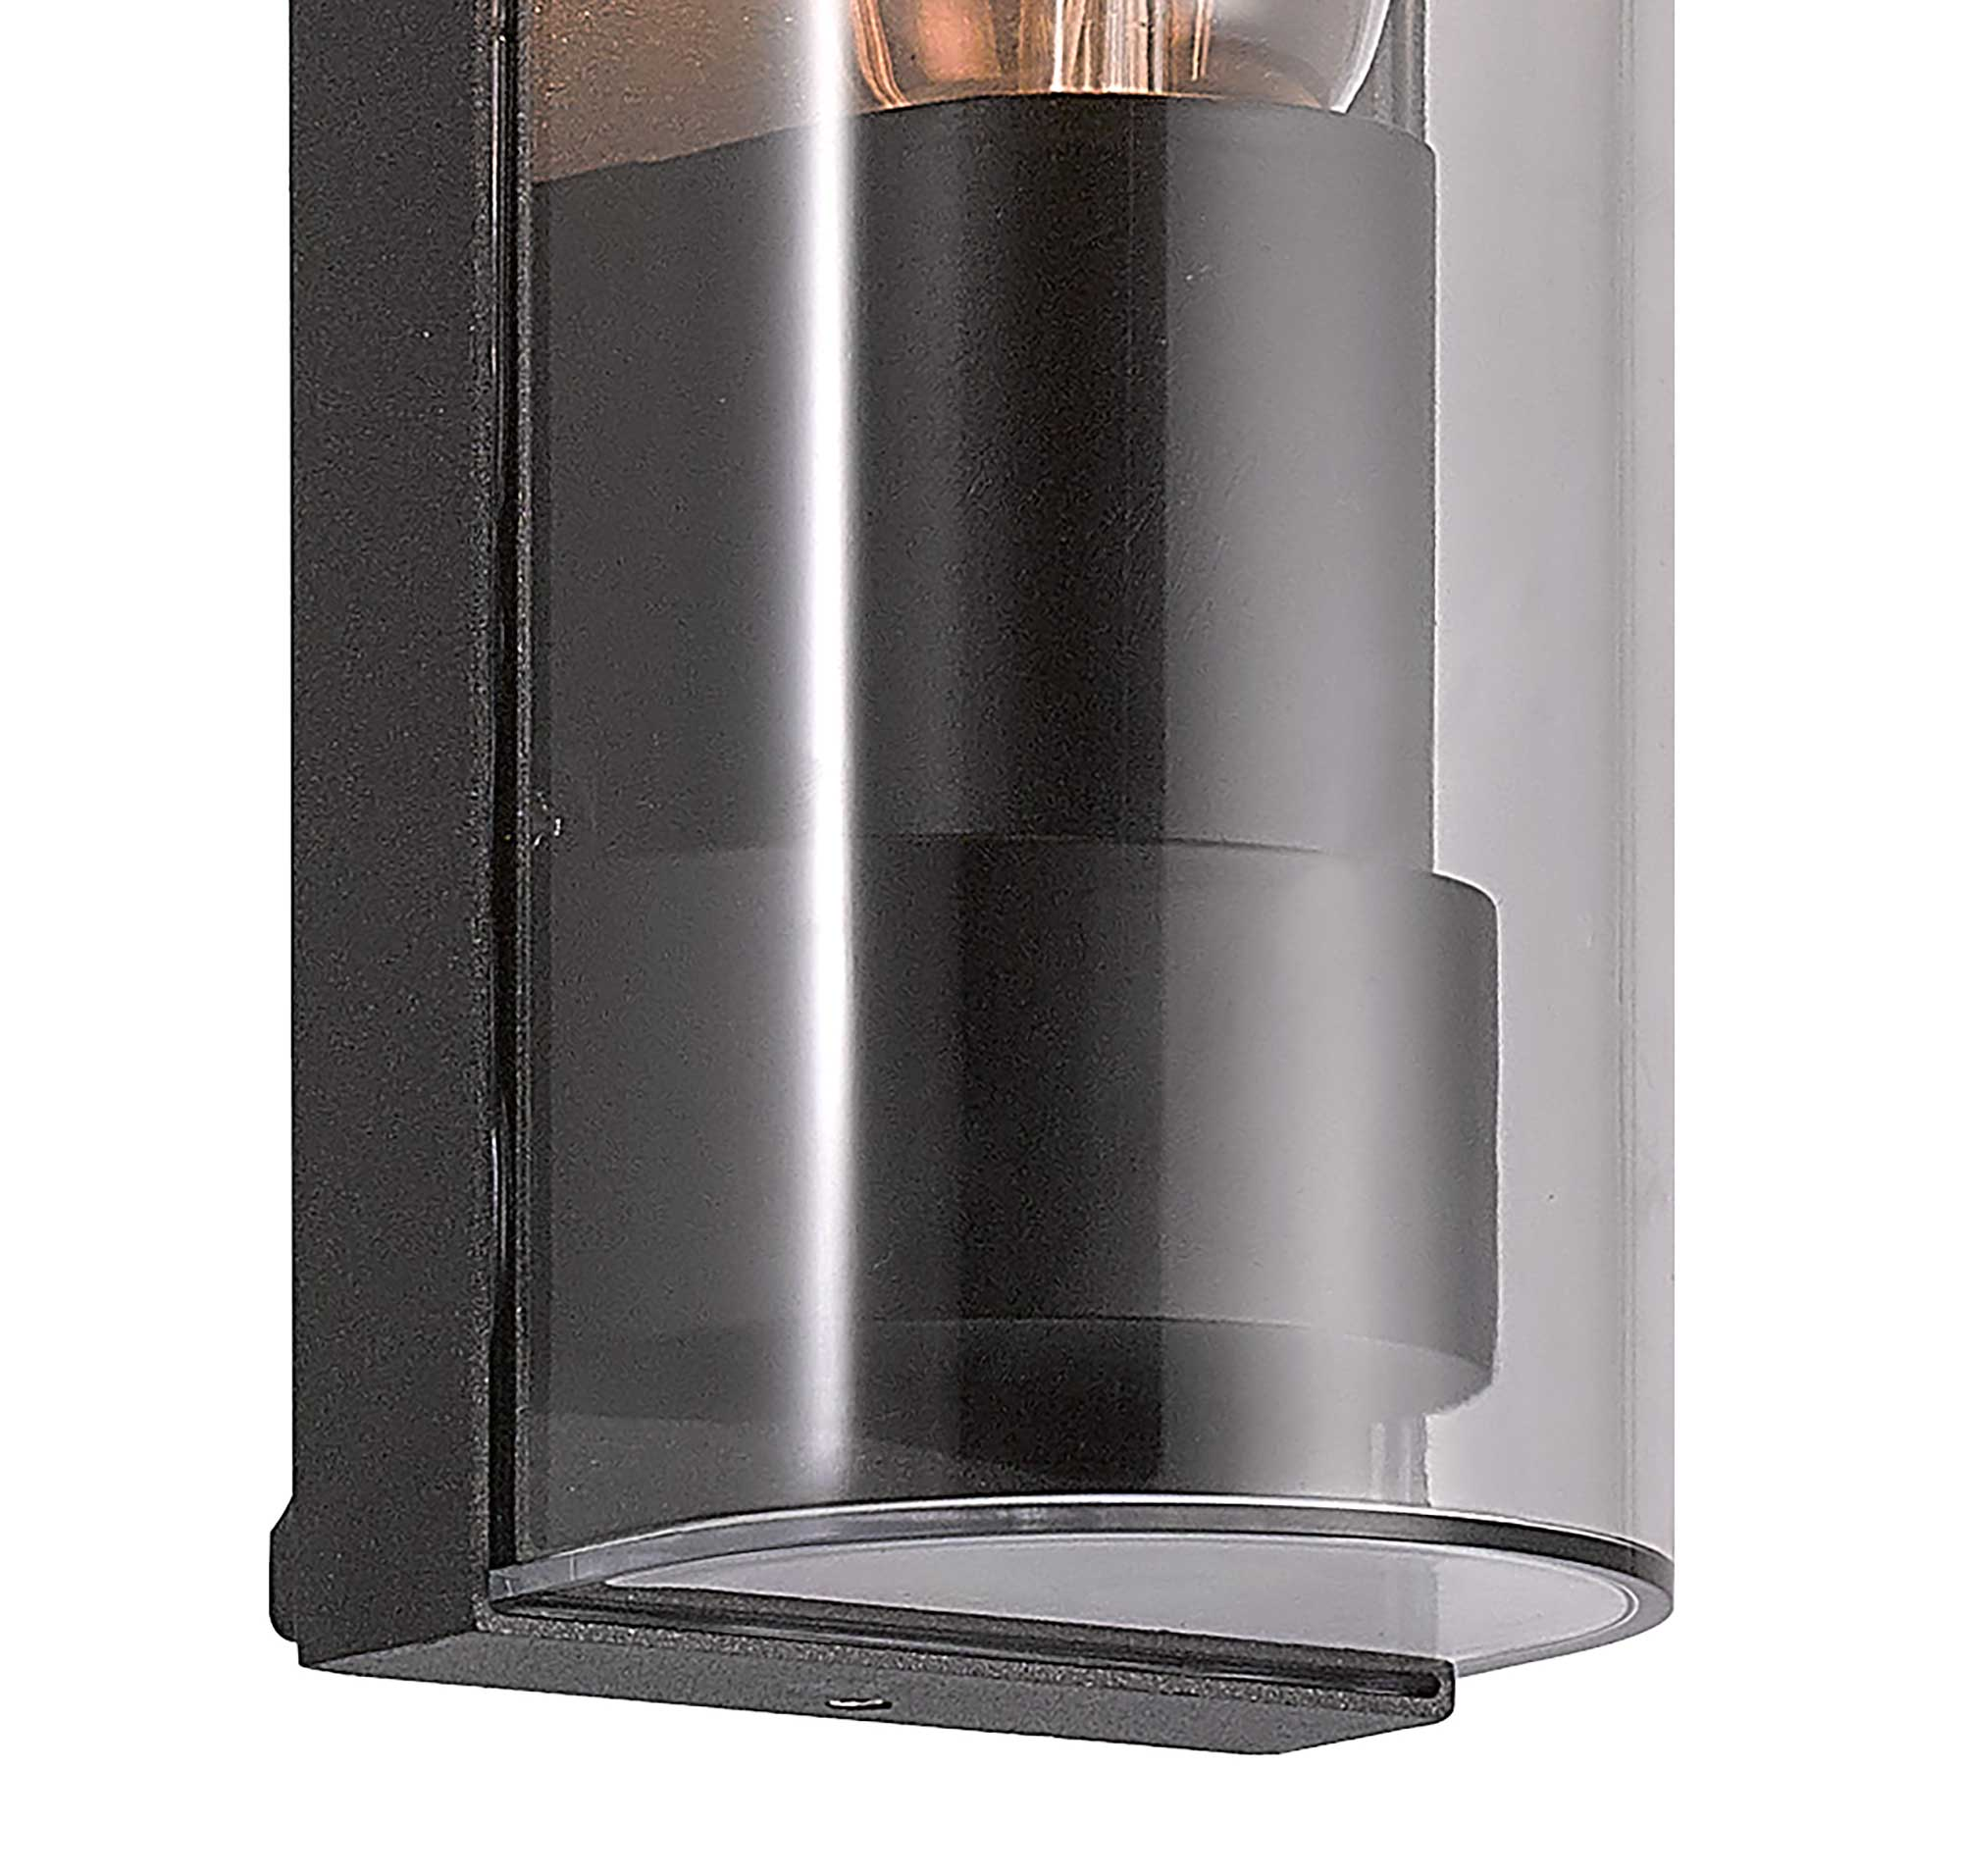 Wall Lamp Curved, 1 x E27, IP65, Anthracite, 2yrs Warranty